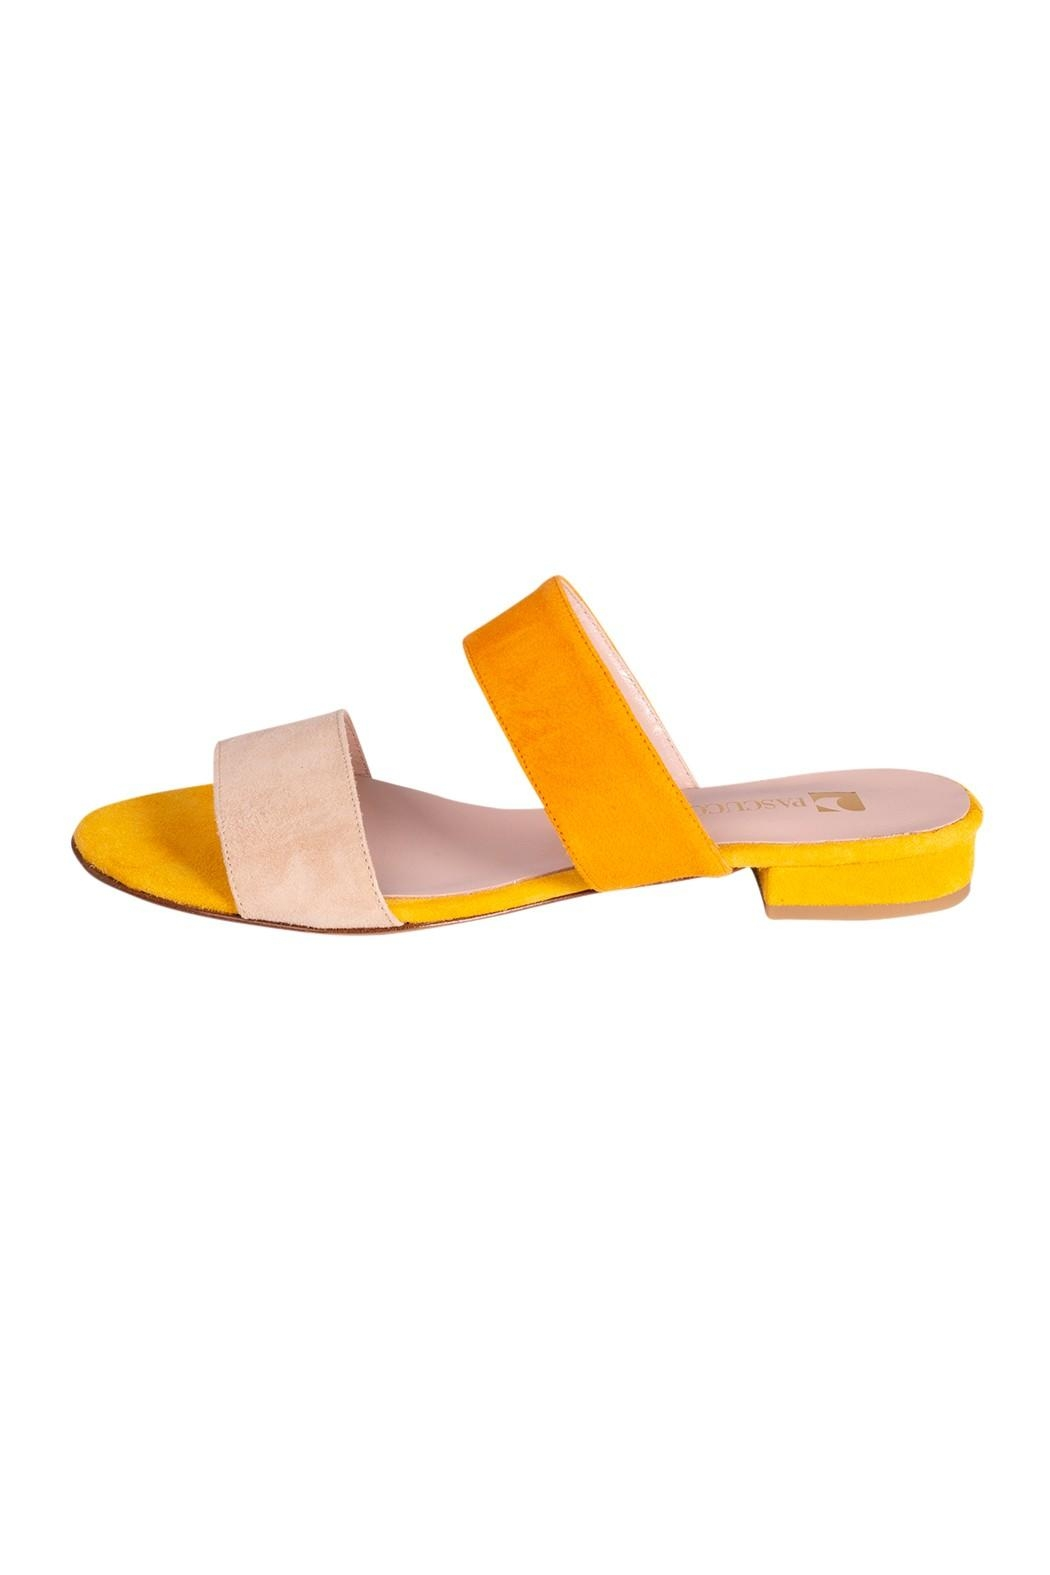 Pascucci Yellow Suede Slides - Main Image